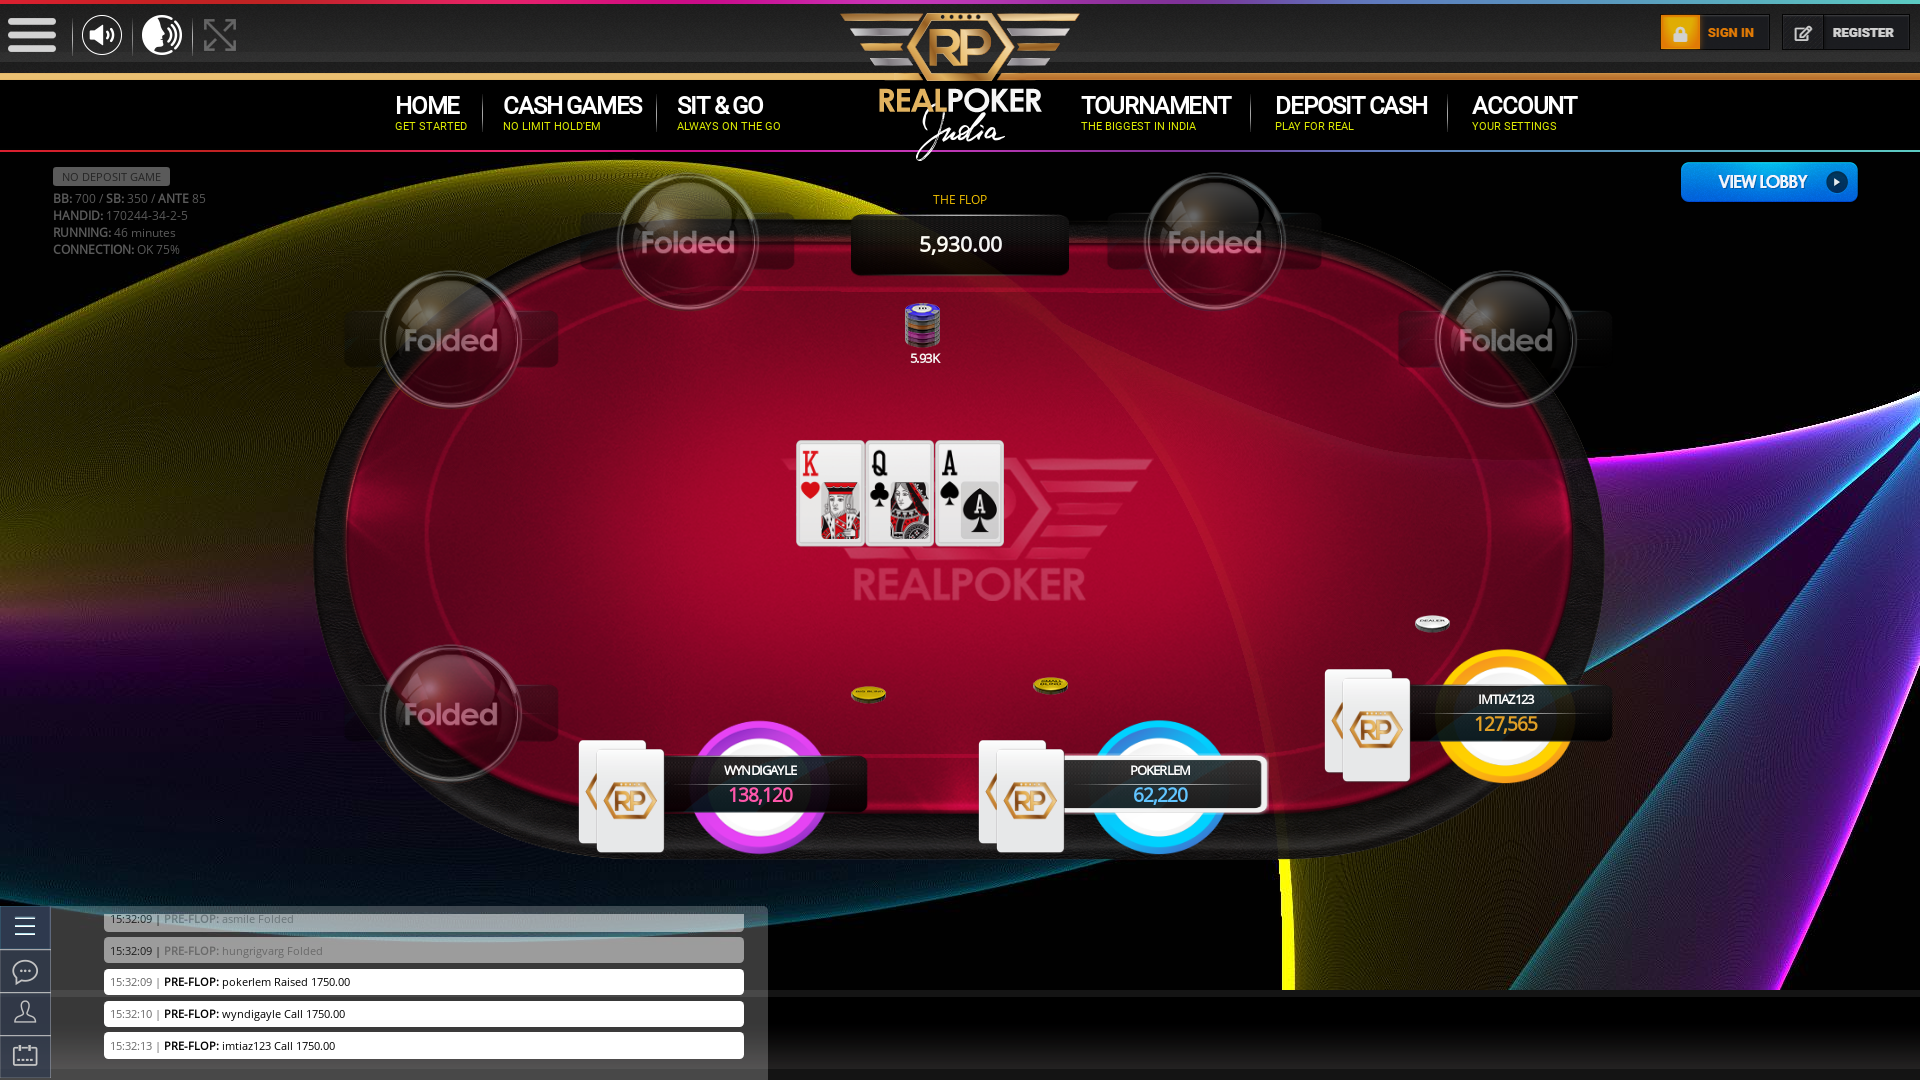 The 34th hand dealt between wyndigayle, imtiaz123, spidieyweb, asmile, asia-girly, hungrigvarg, pokerlem, lilmegalodon,